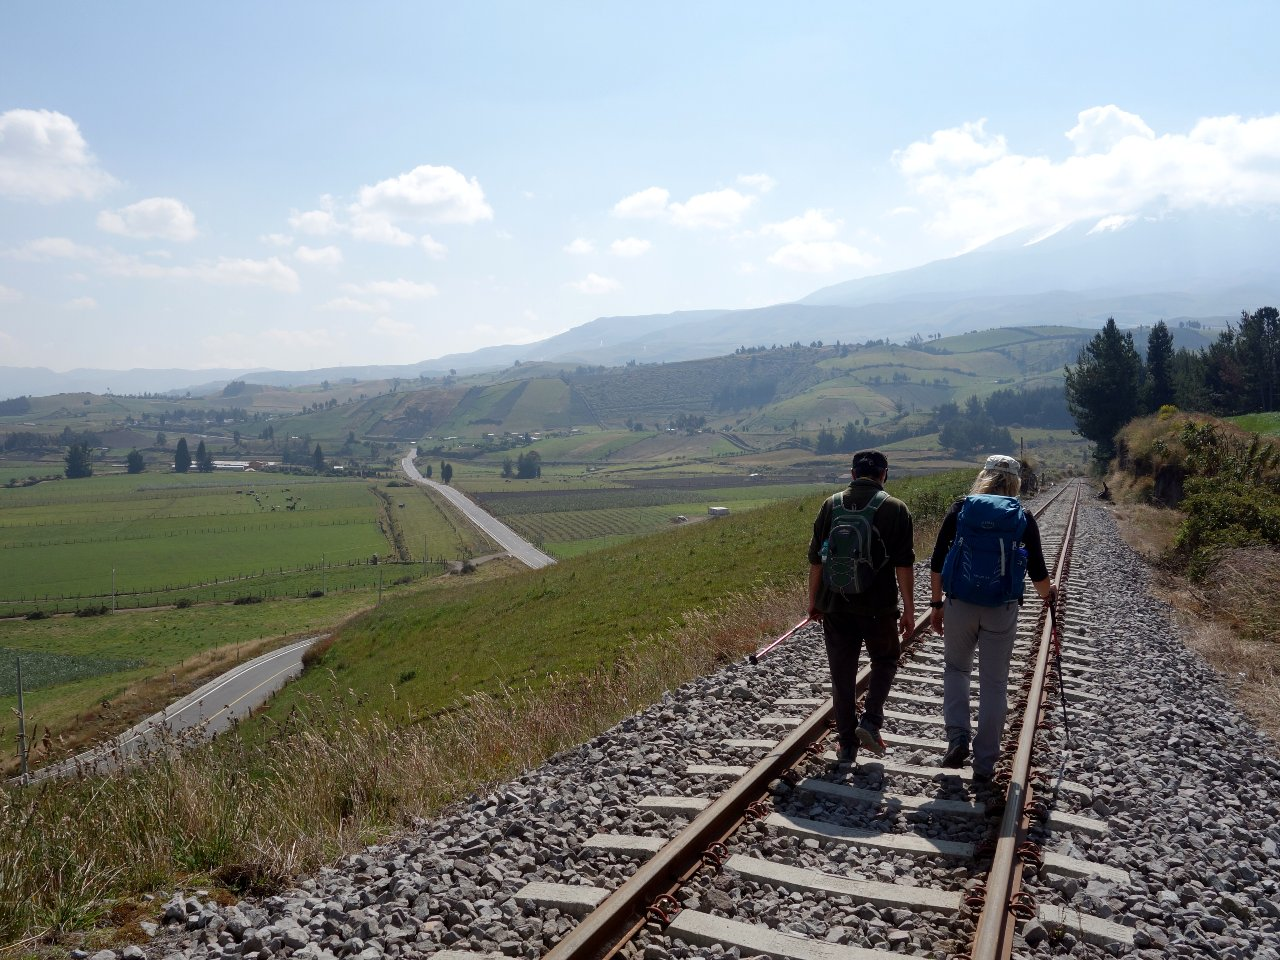 I was a little alarmed when Rodrigo started walking along the railway line